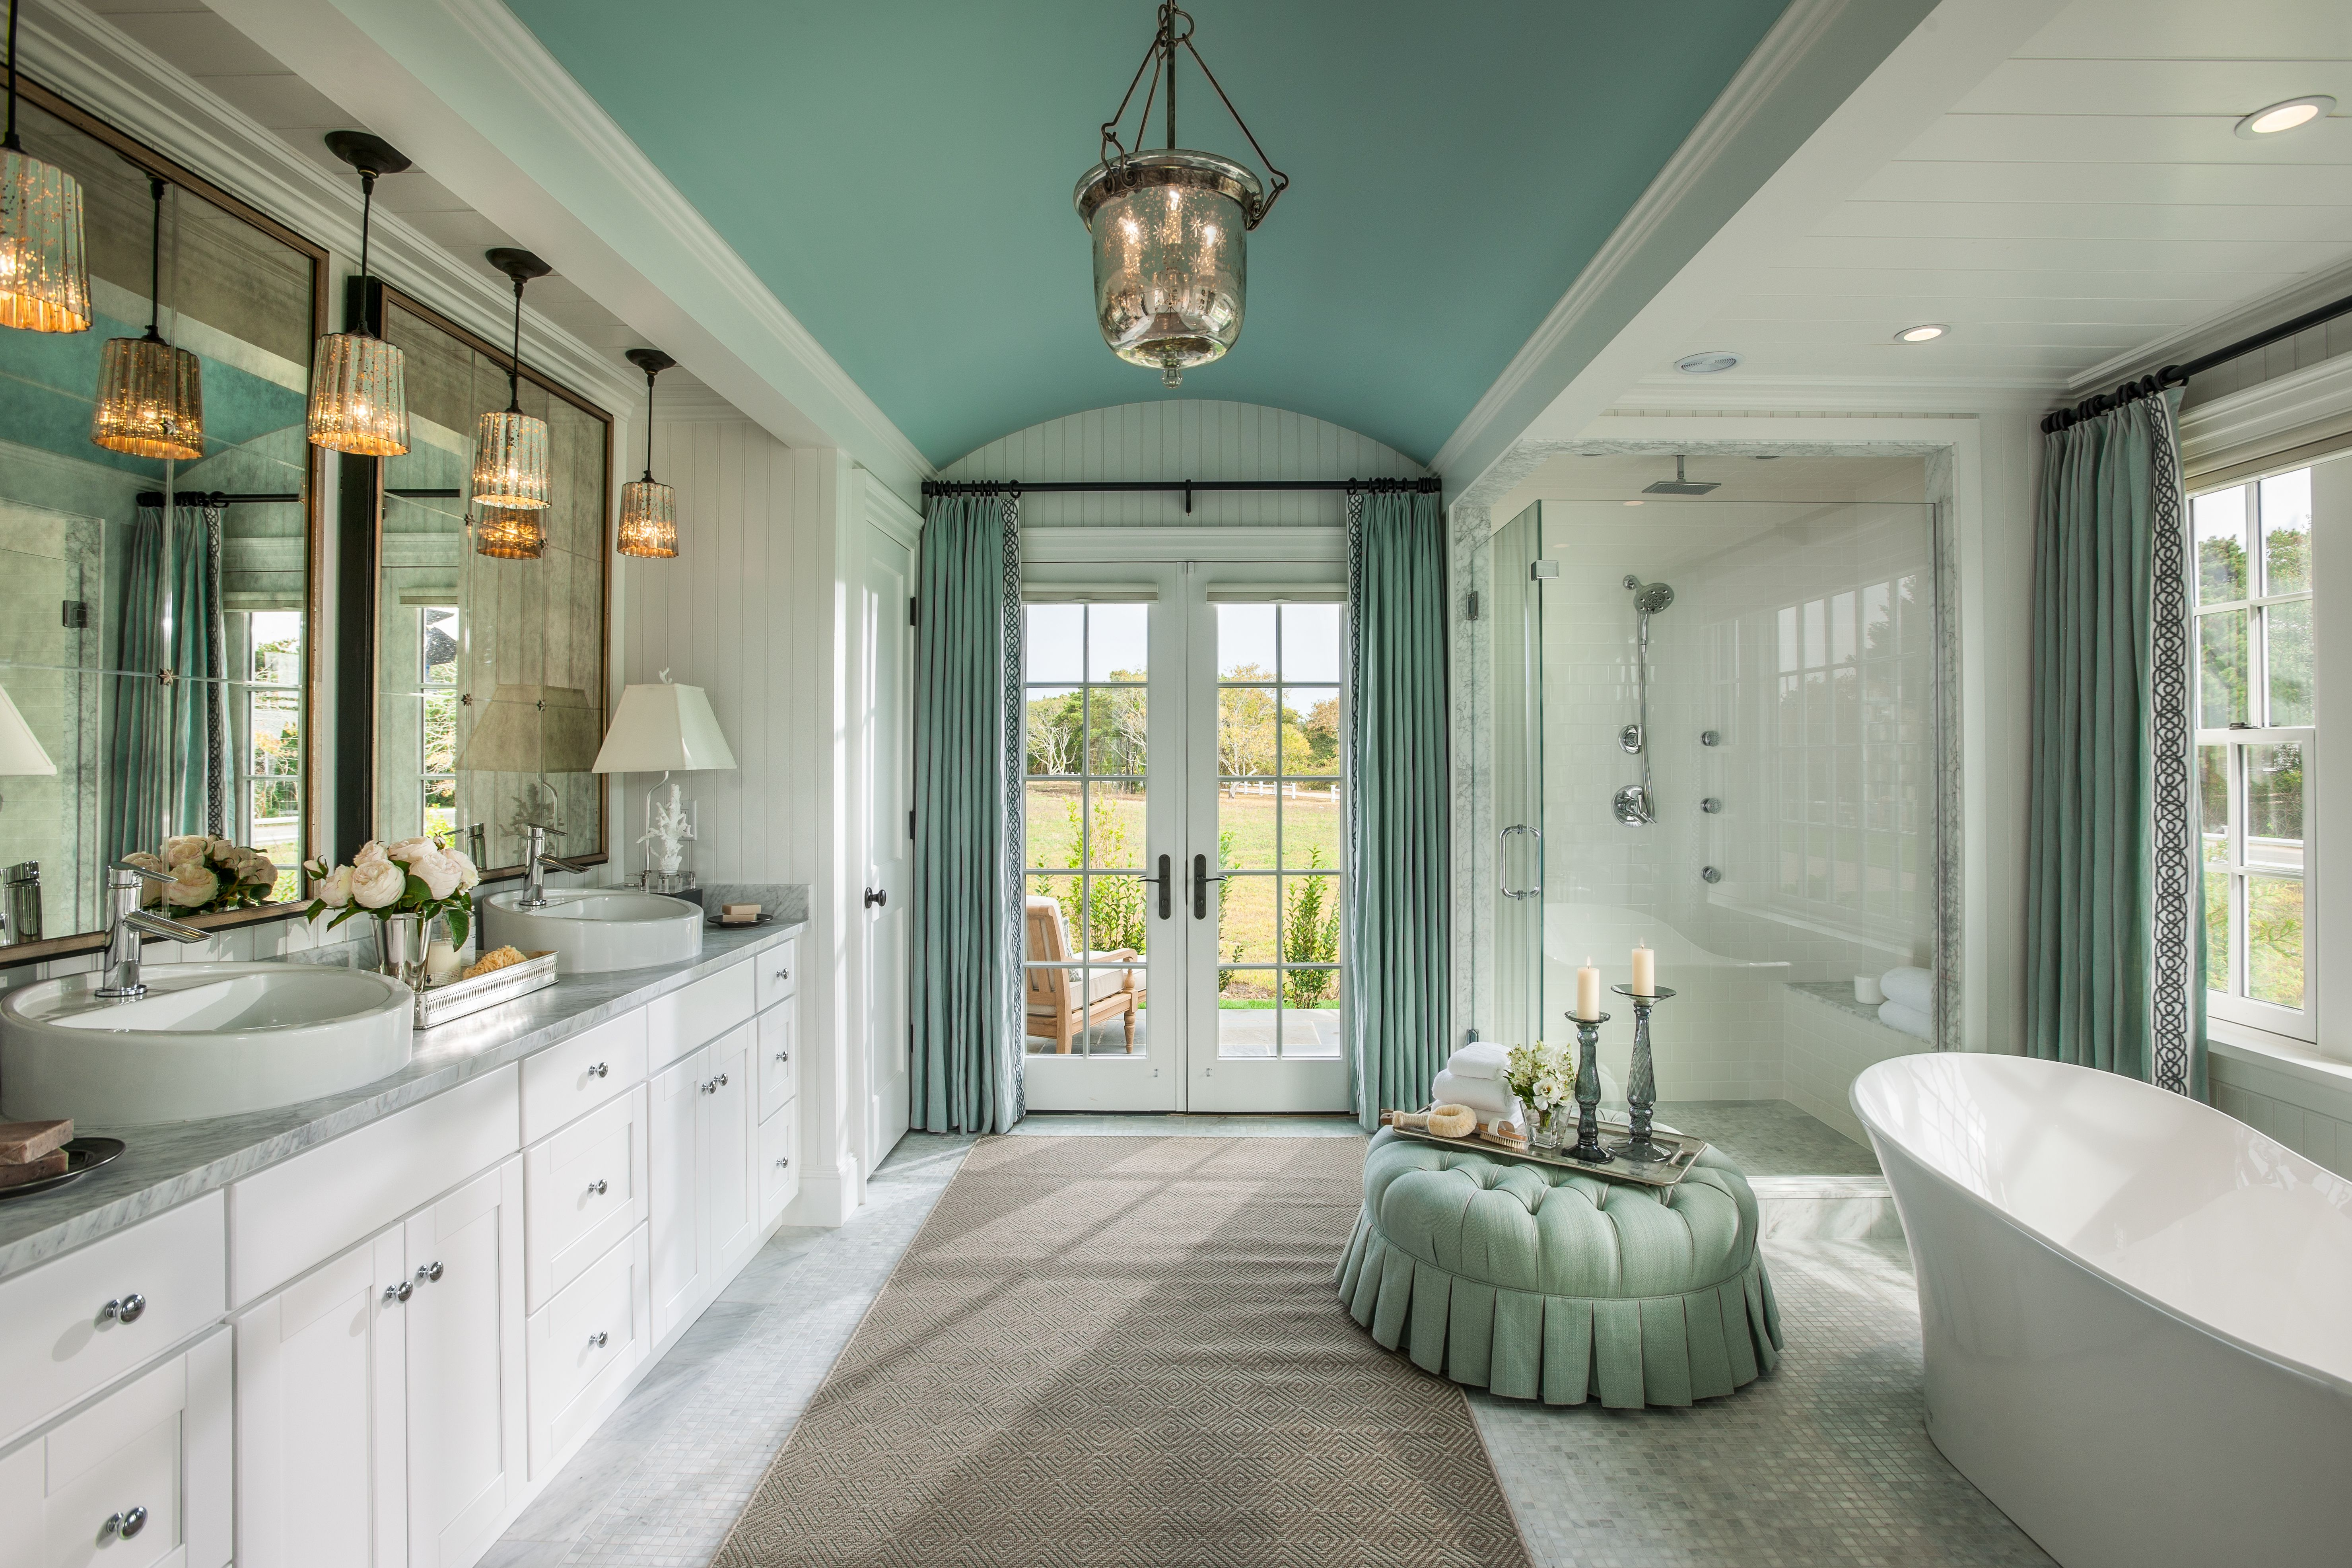 Dressing Room From HGTV Dream Home 2015 | Hgtv, Master bathrooms and ...